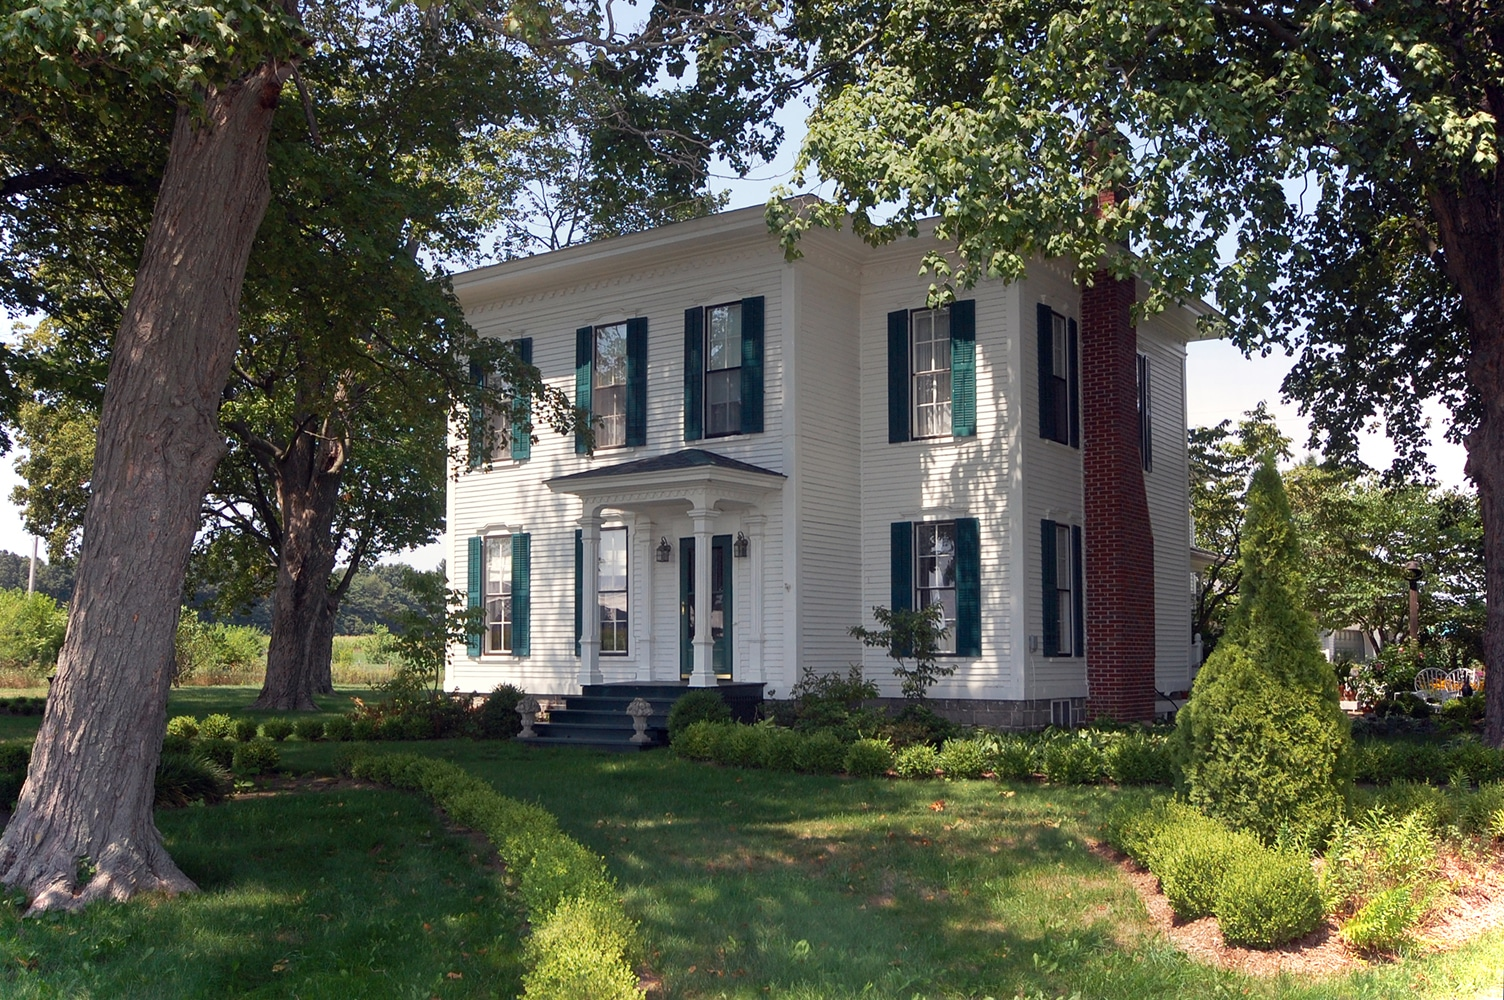 Historic Home For Sale Kalamazoo Real Estate 9286 W D